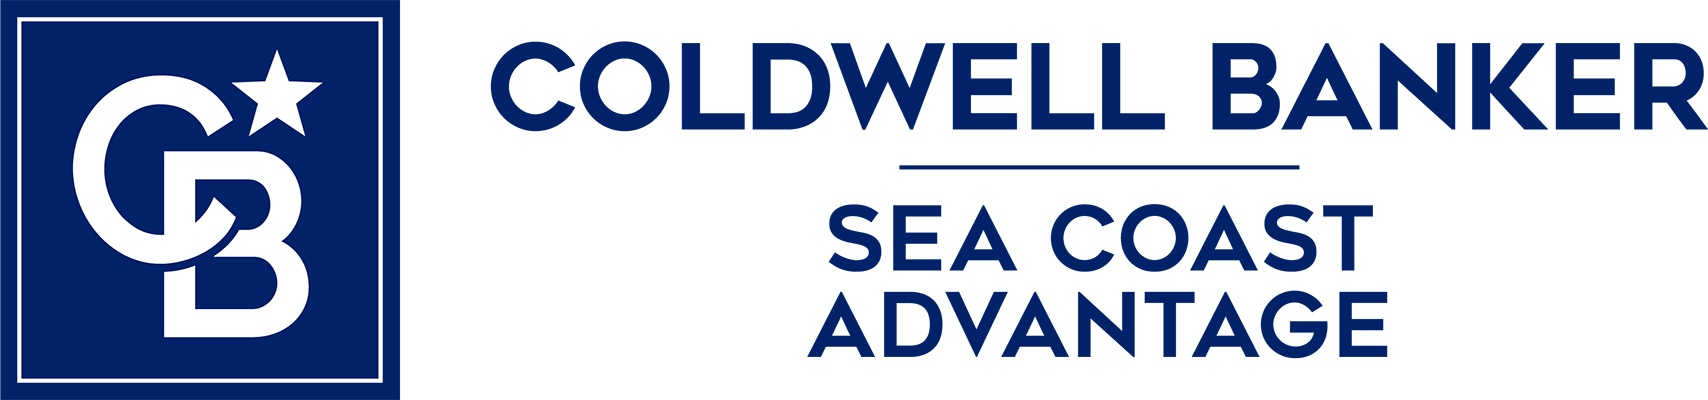 Brenda Bokano - Coldwell Banker Sea Coast Advantage Realty Logo